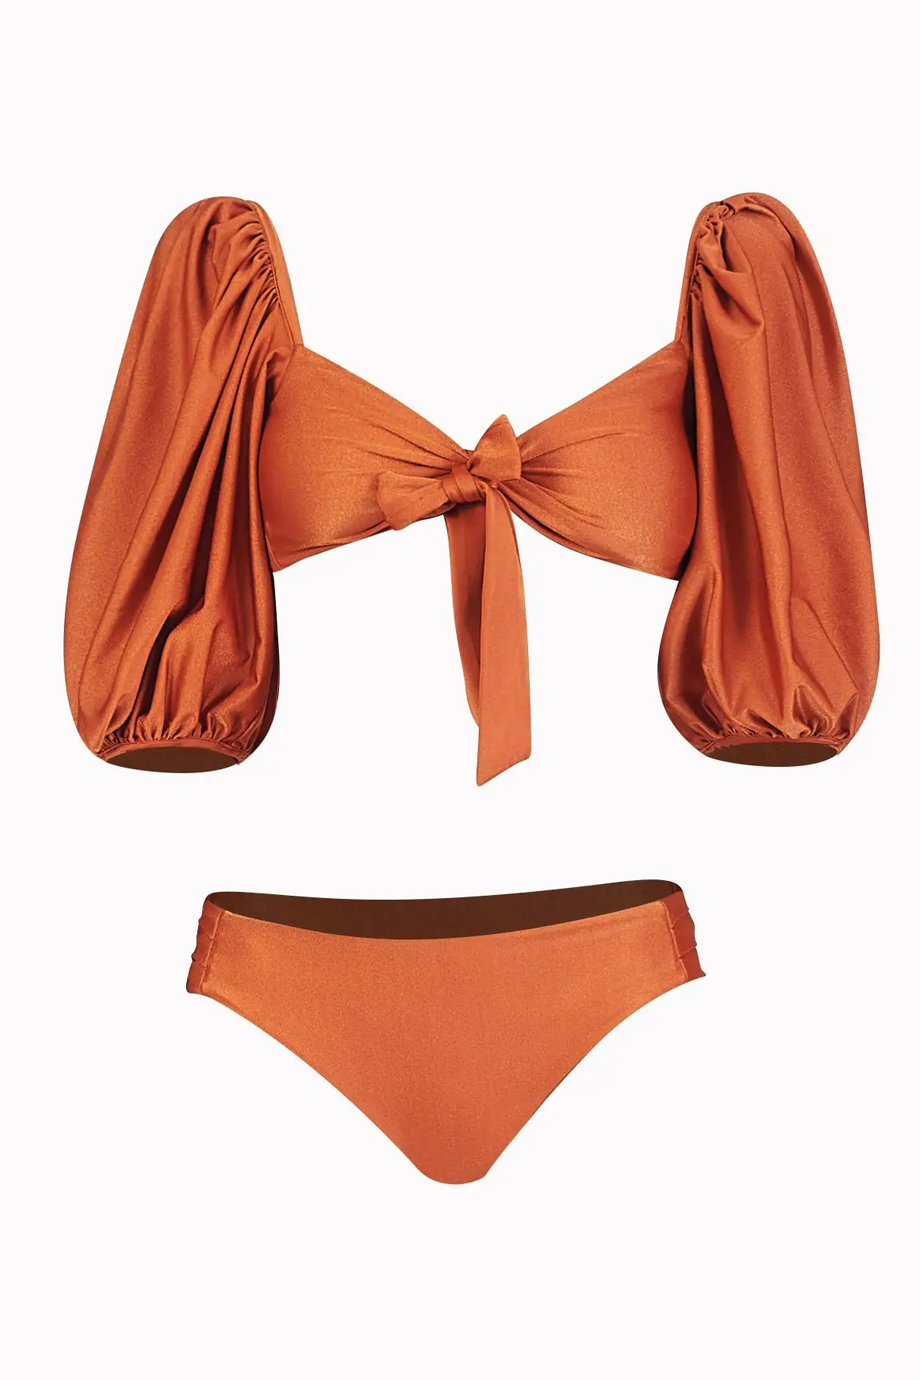 RUMBA BIKINI TOP AND BOTTOM TERRACOTA